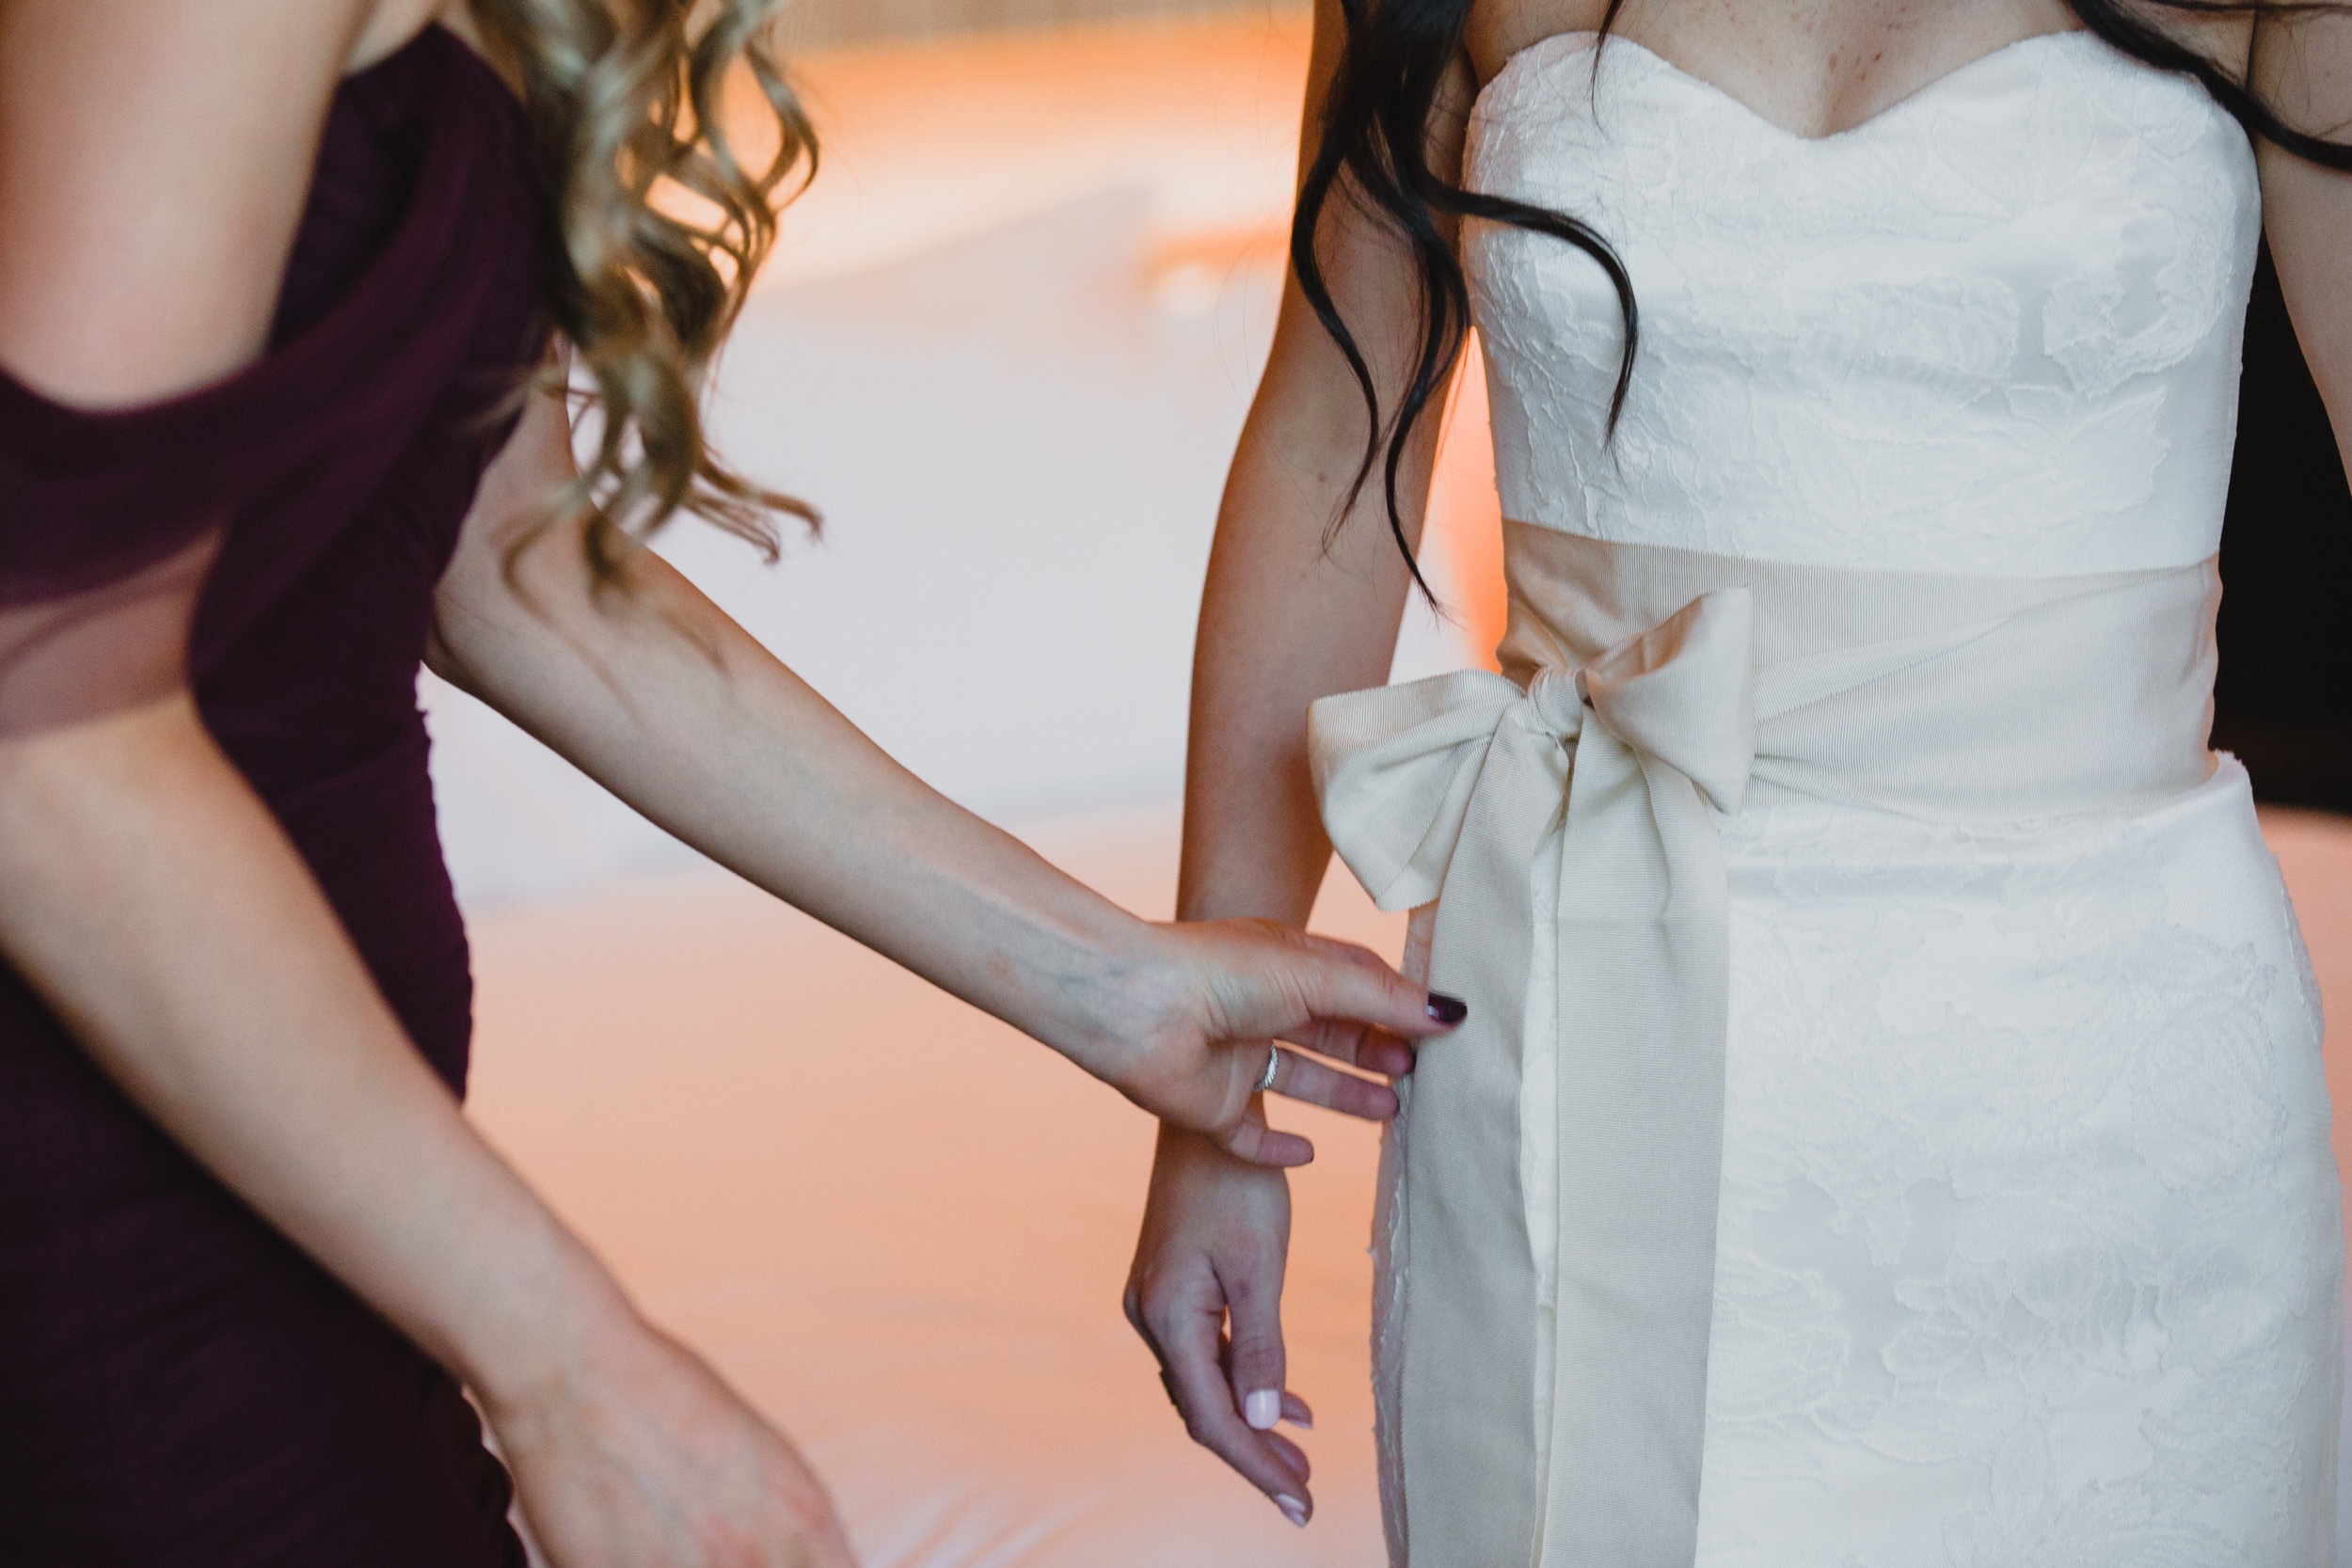 Tie bow on belt for Vera Wang Wedding Dress.Luxury wedding at the Mandarin Oriental with a color scheme of white, blush, and pops of wine red produced by Las Vegas Wedding Planner Andrea Eppolito with photos by Stephen Salazar Photography.